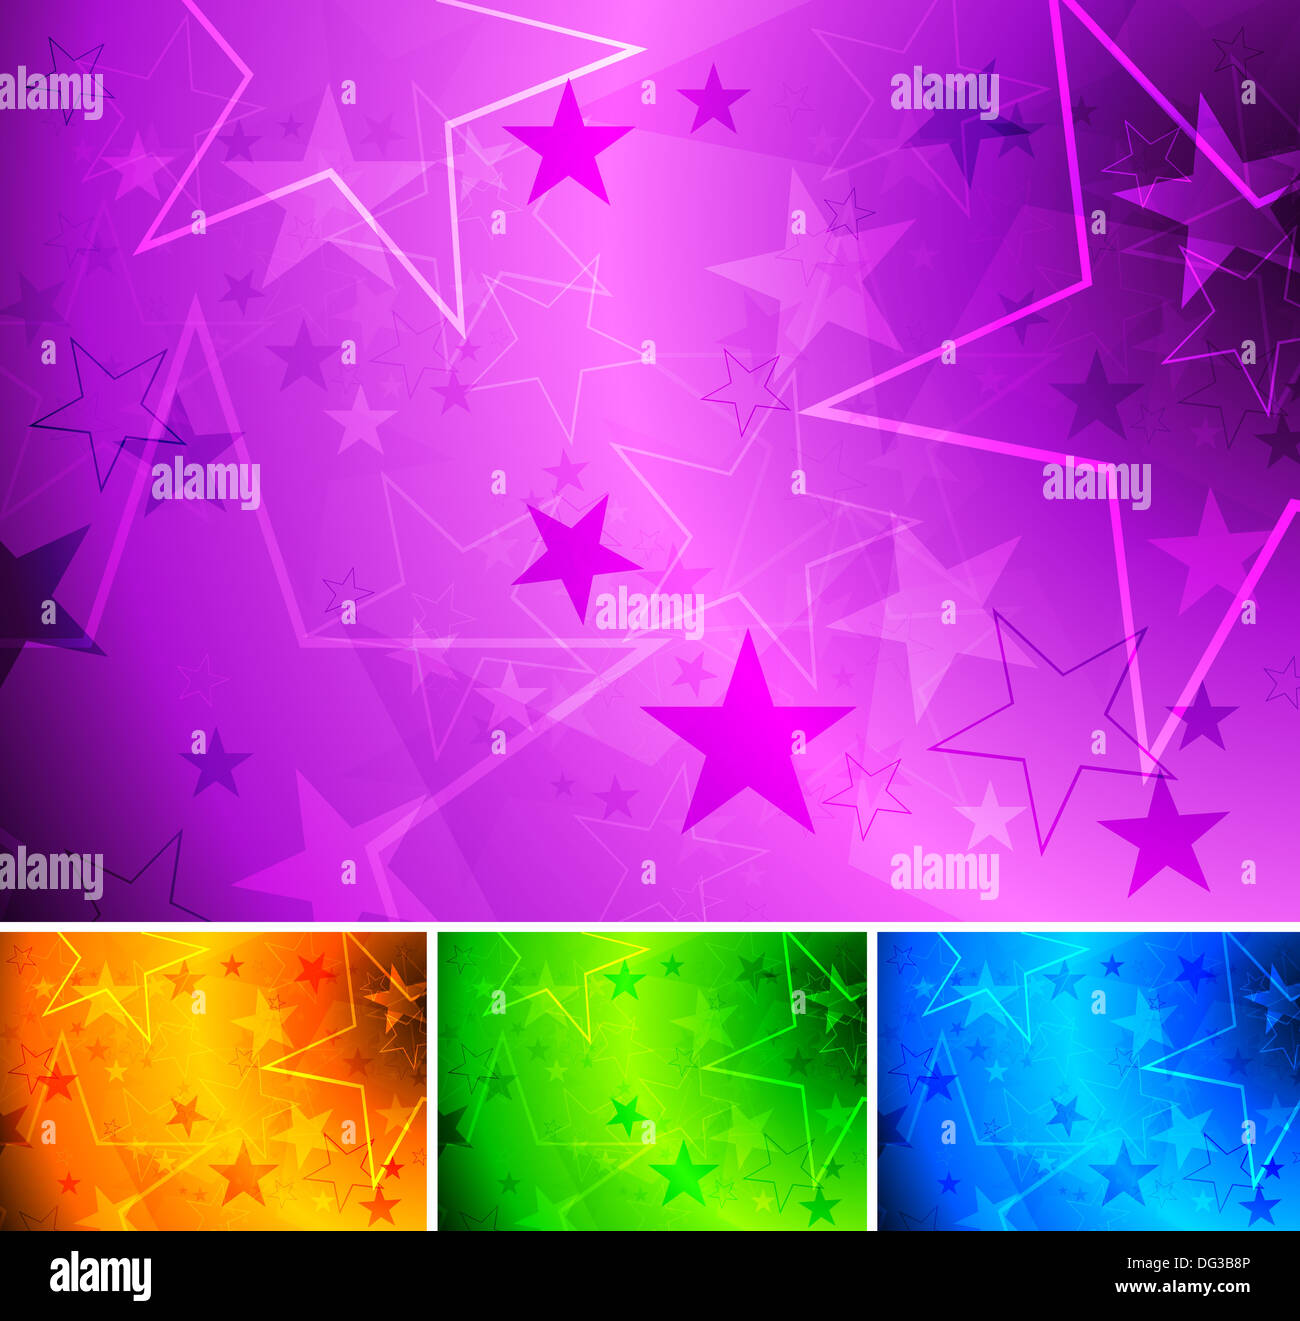 Set of bright star backgrounds eps 10 stock photo 61540326 alamy set of bright star backgrounds eps 10 thecheapjerseys Gallery